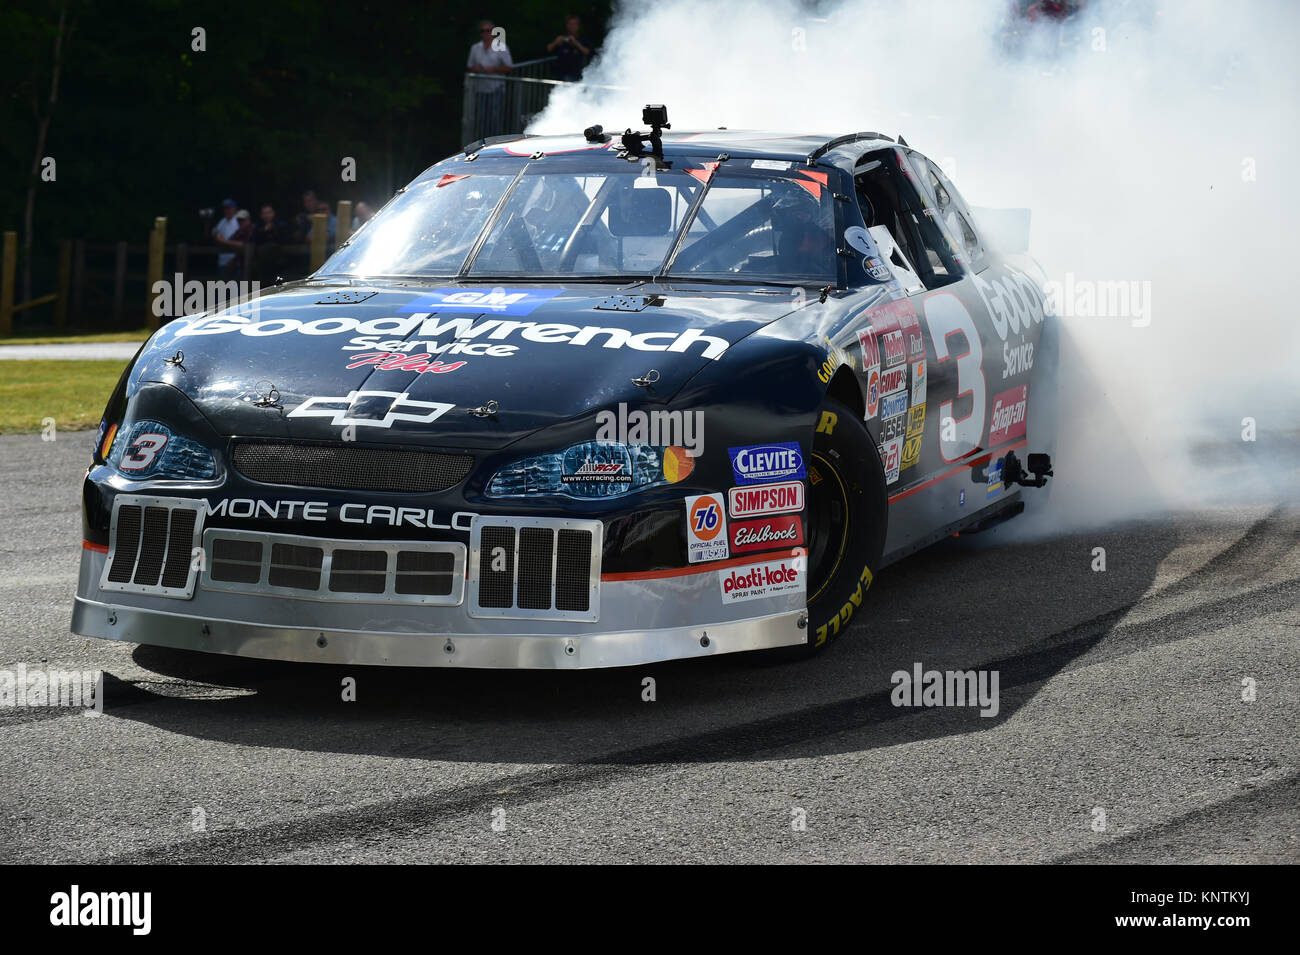 Kerry Earnhardt, Chevrolet Monte Carlo, Goodwood Festival Of Speed, 2014,  2014, Autosport, Burn Out, Cars, Chevrolet Monte Carlo, Classic Cars, Famous